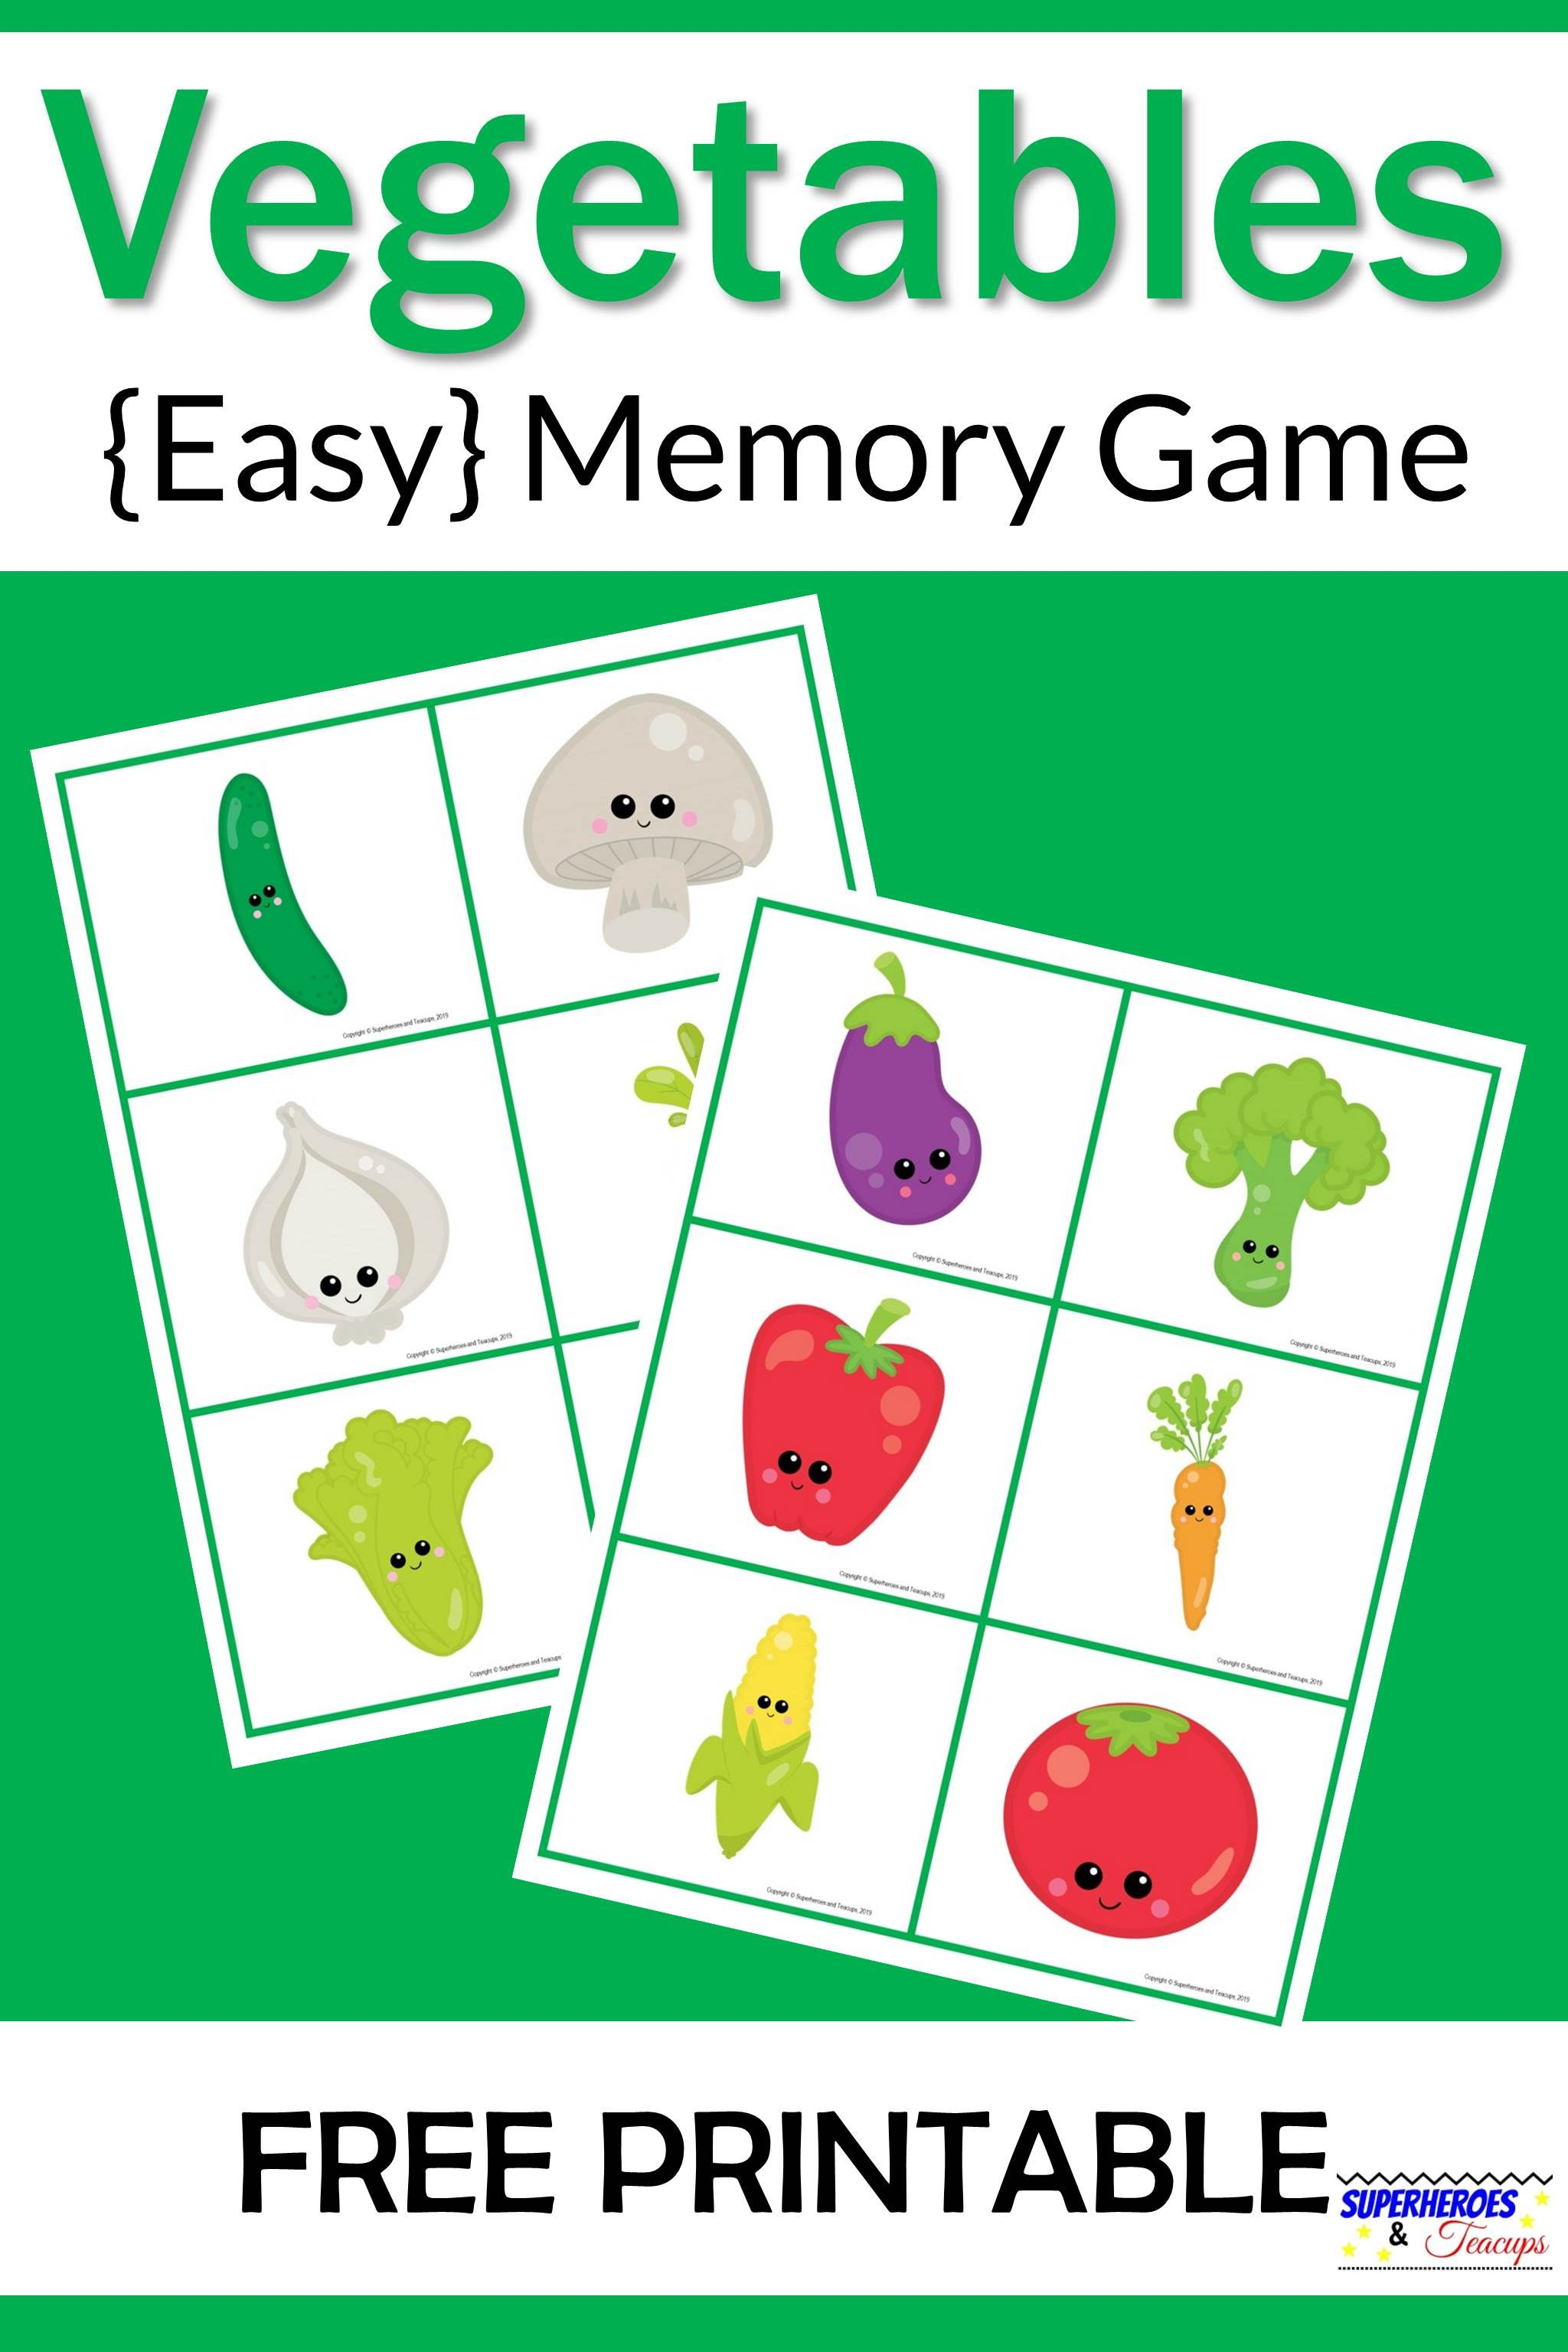 Vegetables Memory Game Free Printable for Kids Matching